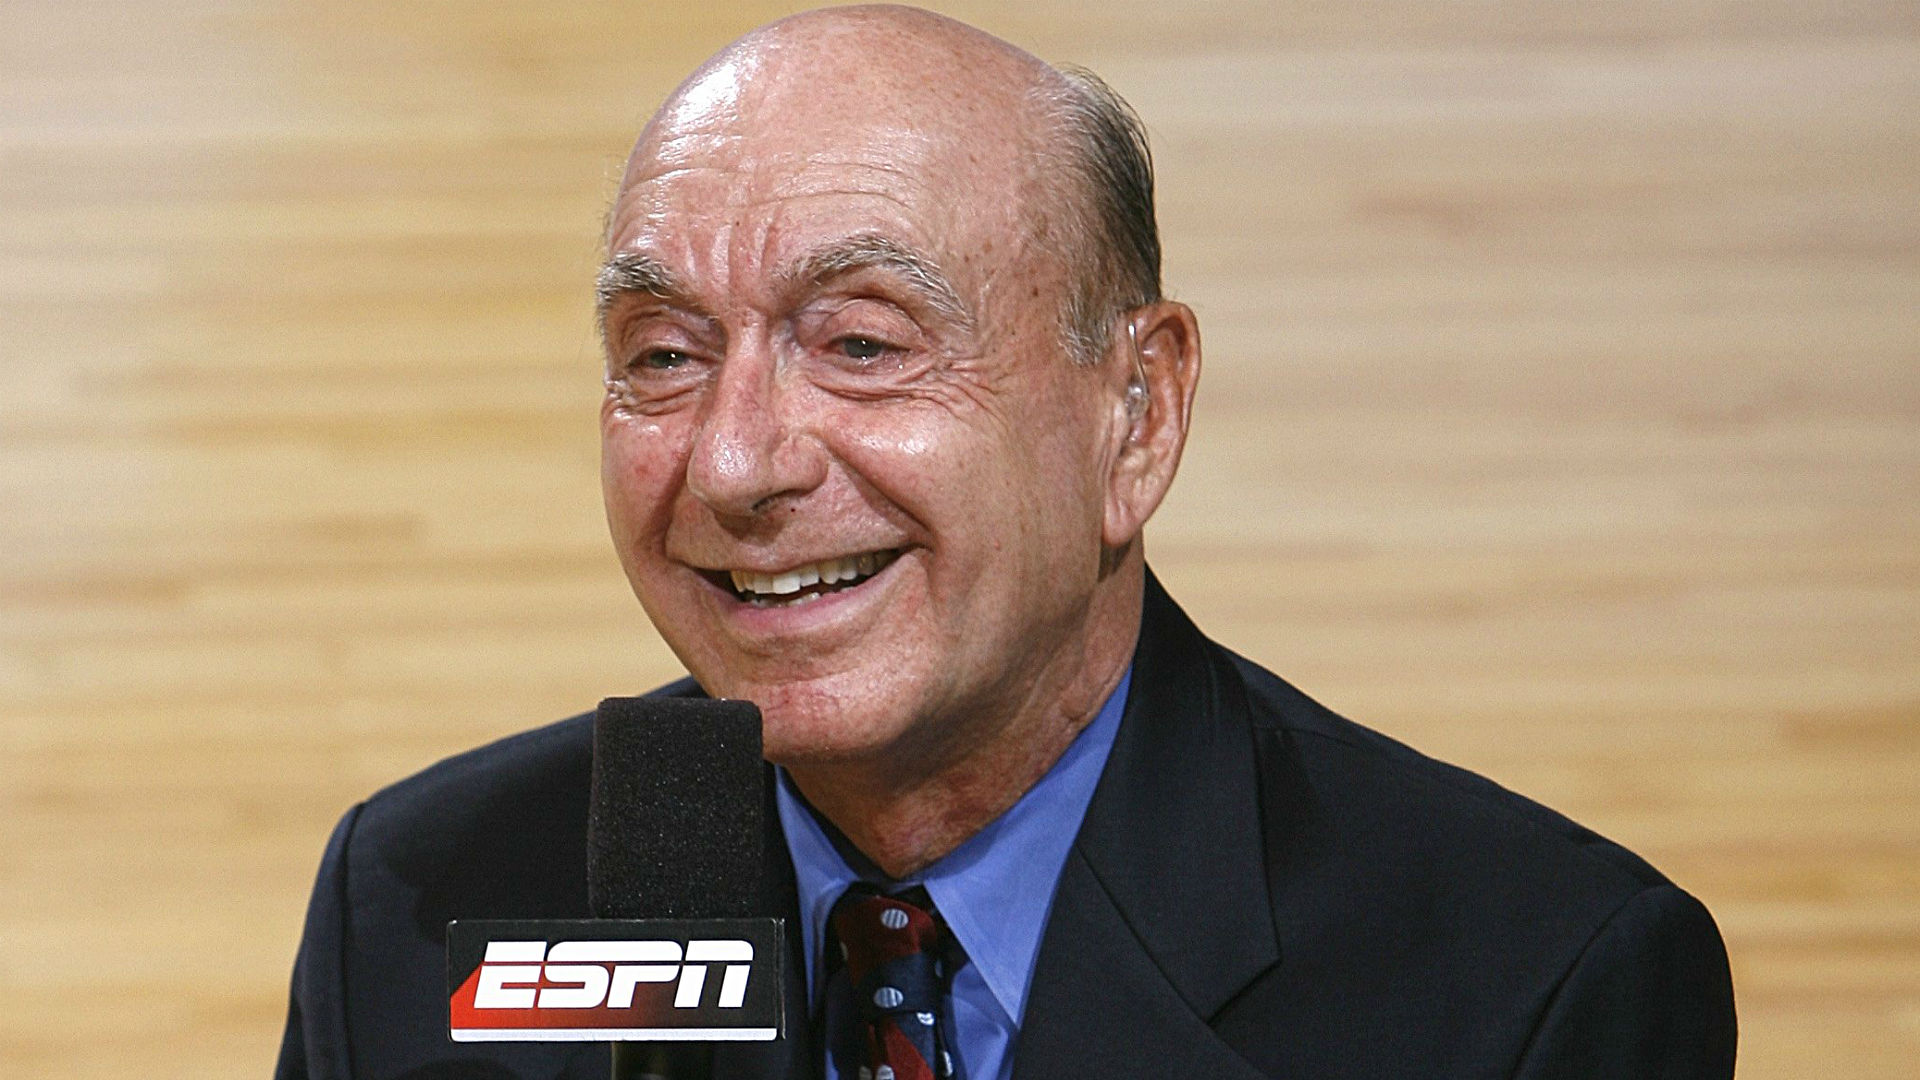 Dick Vitale unloads on college basketball scandal but believes Rick Pitino